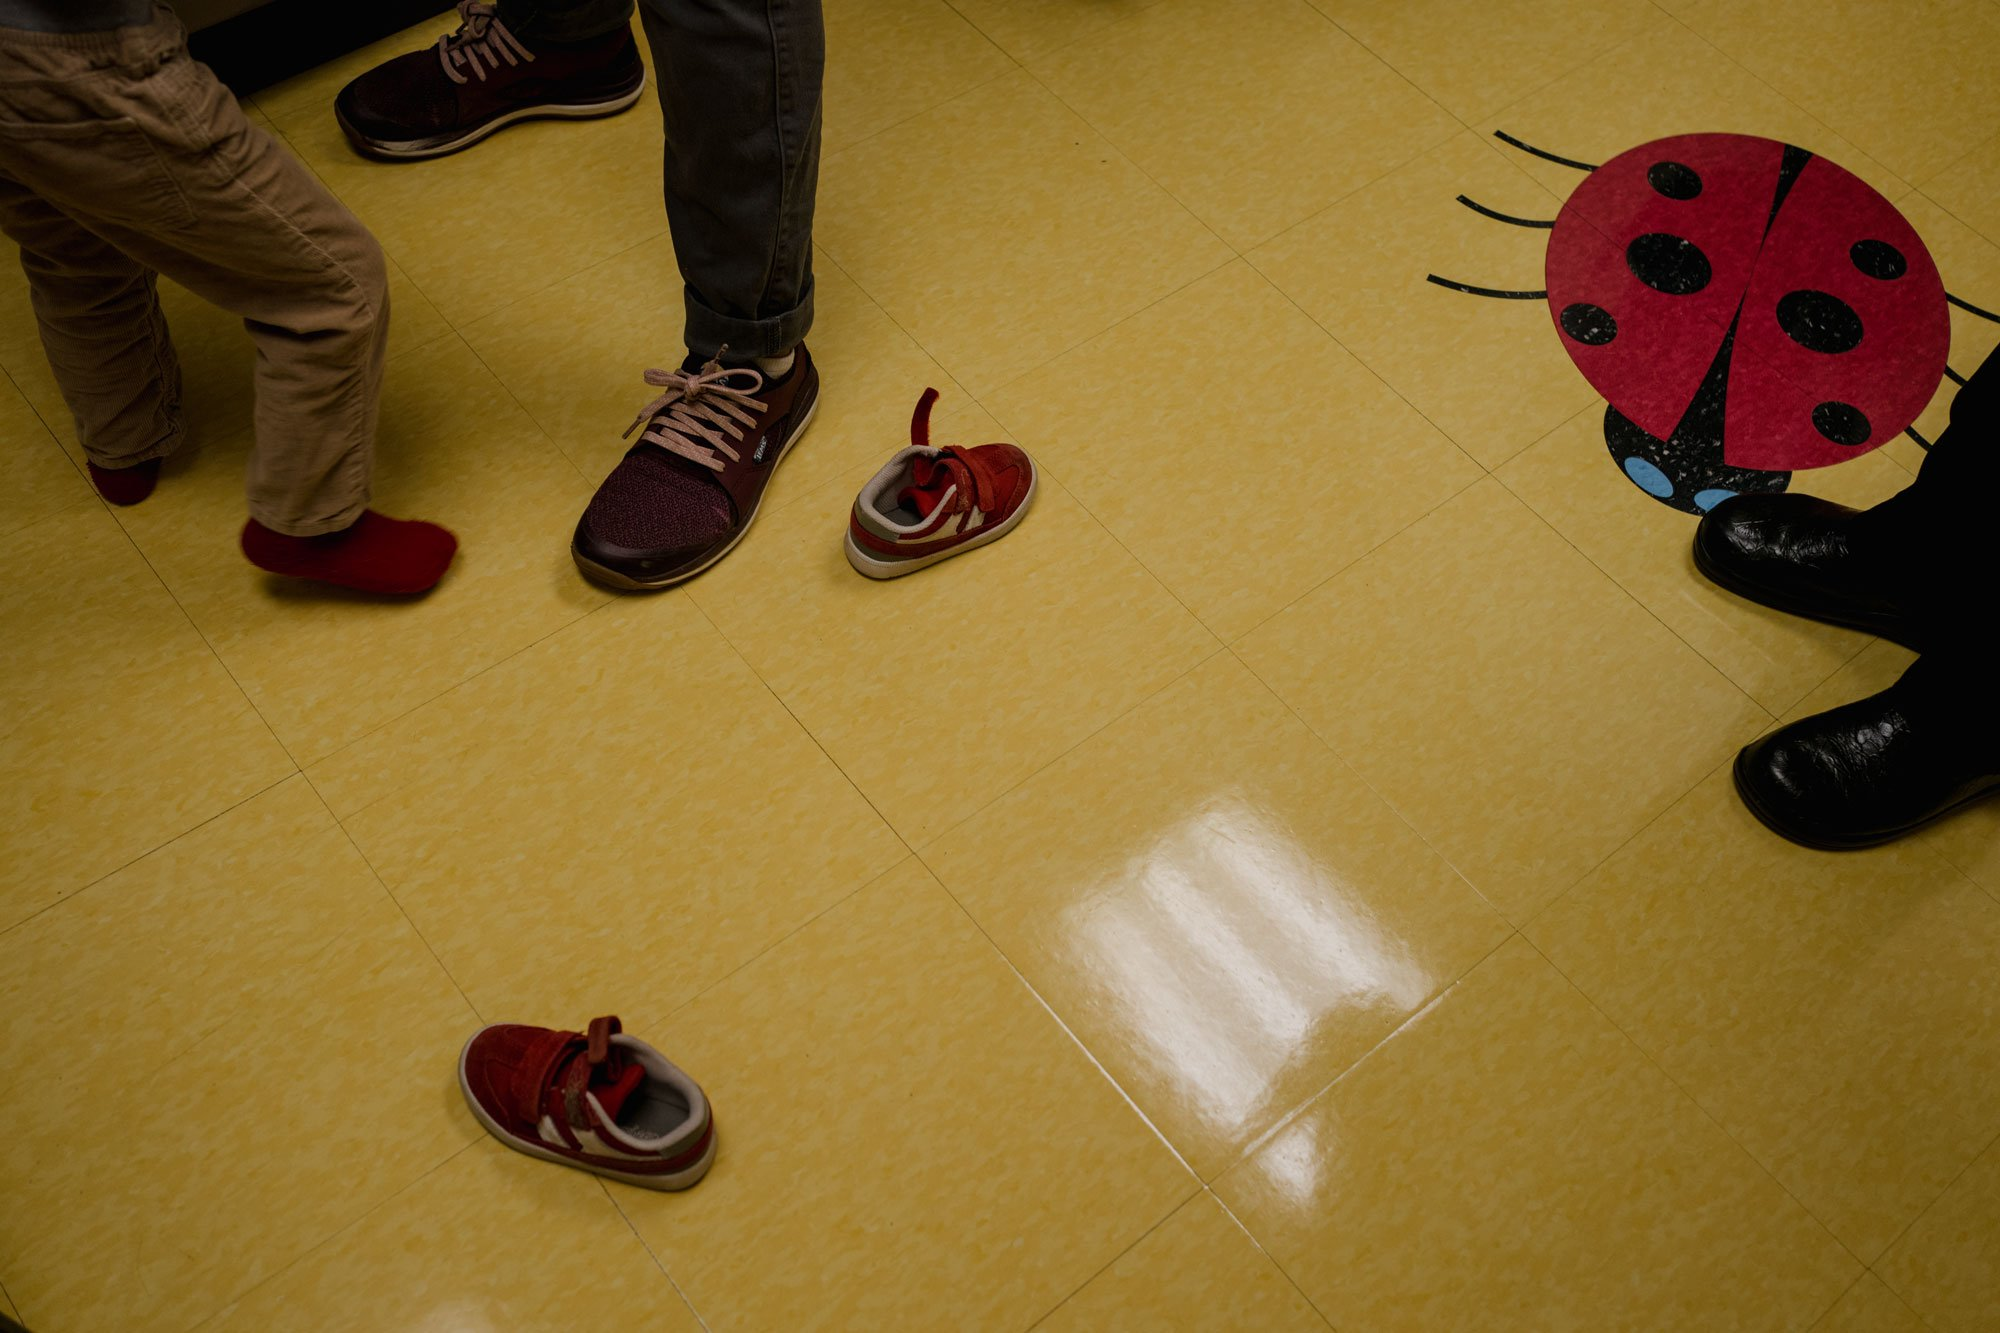 shoes on ground while boy gets ready for exam